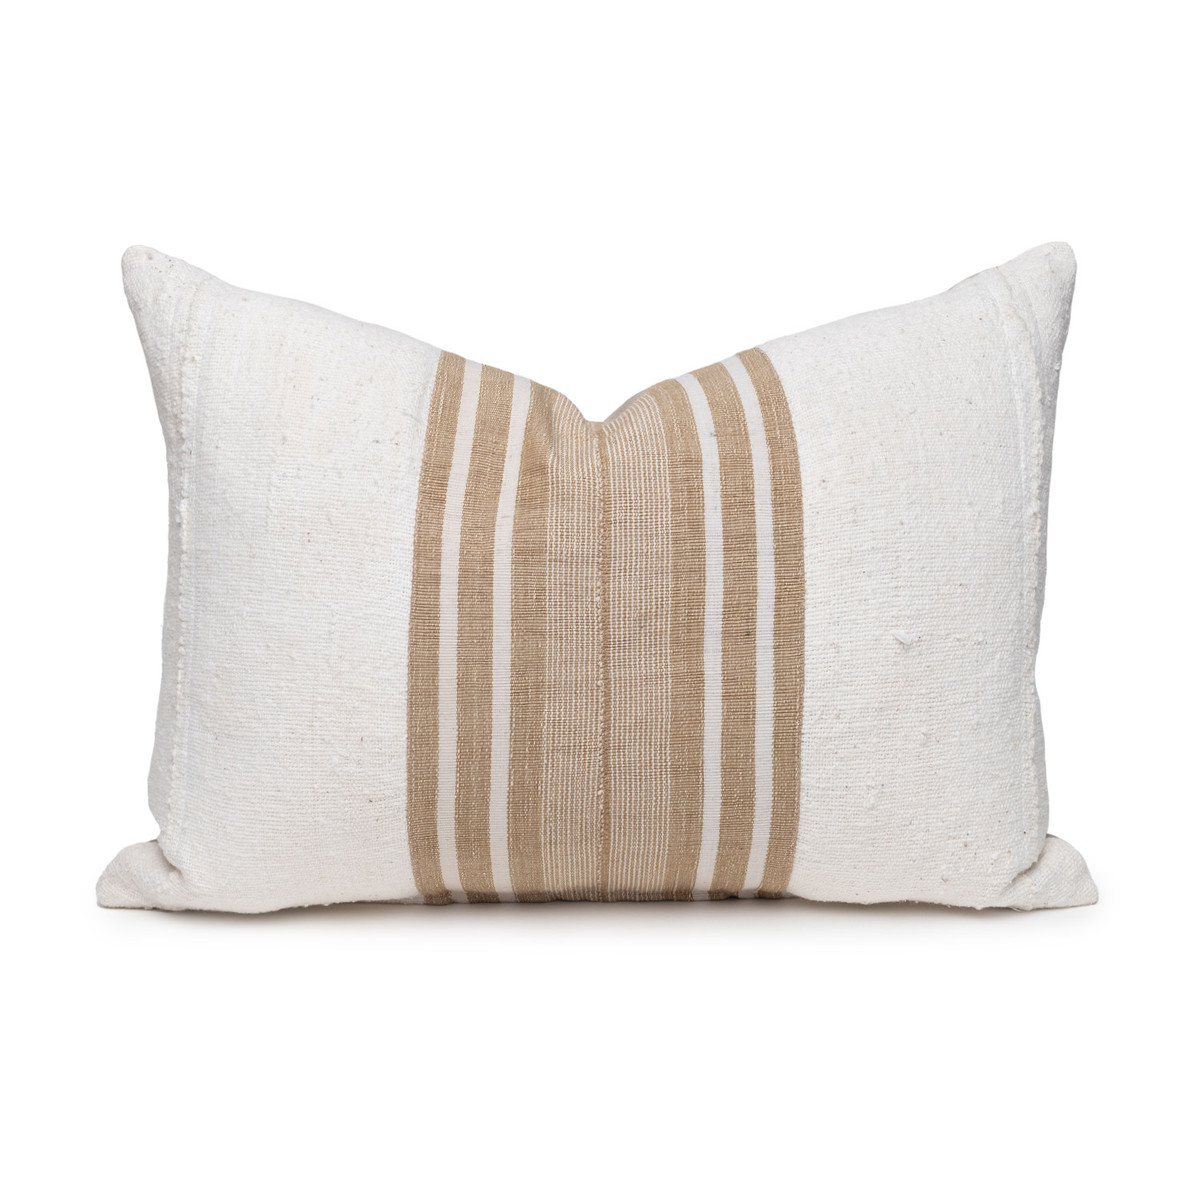 Field Lumbar Pillow - Aso Oke Natural Linen Pillow with White Mud Cloth- 1622 - Front View